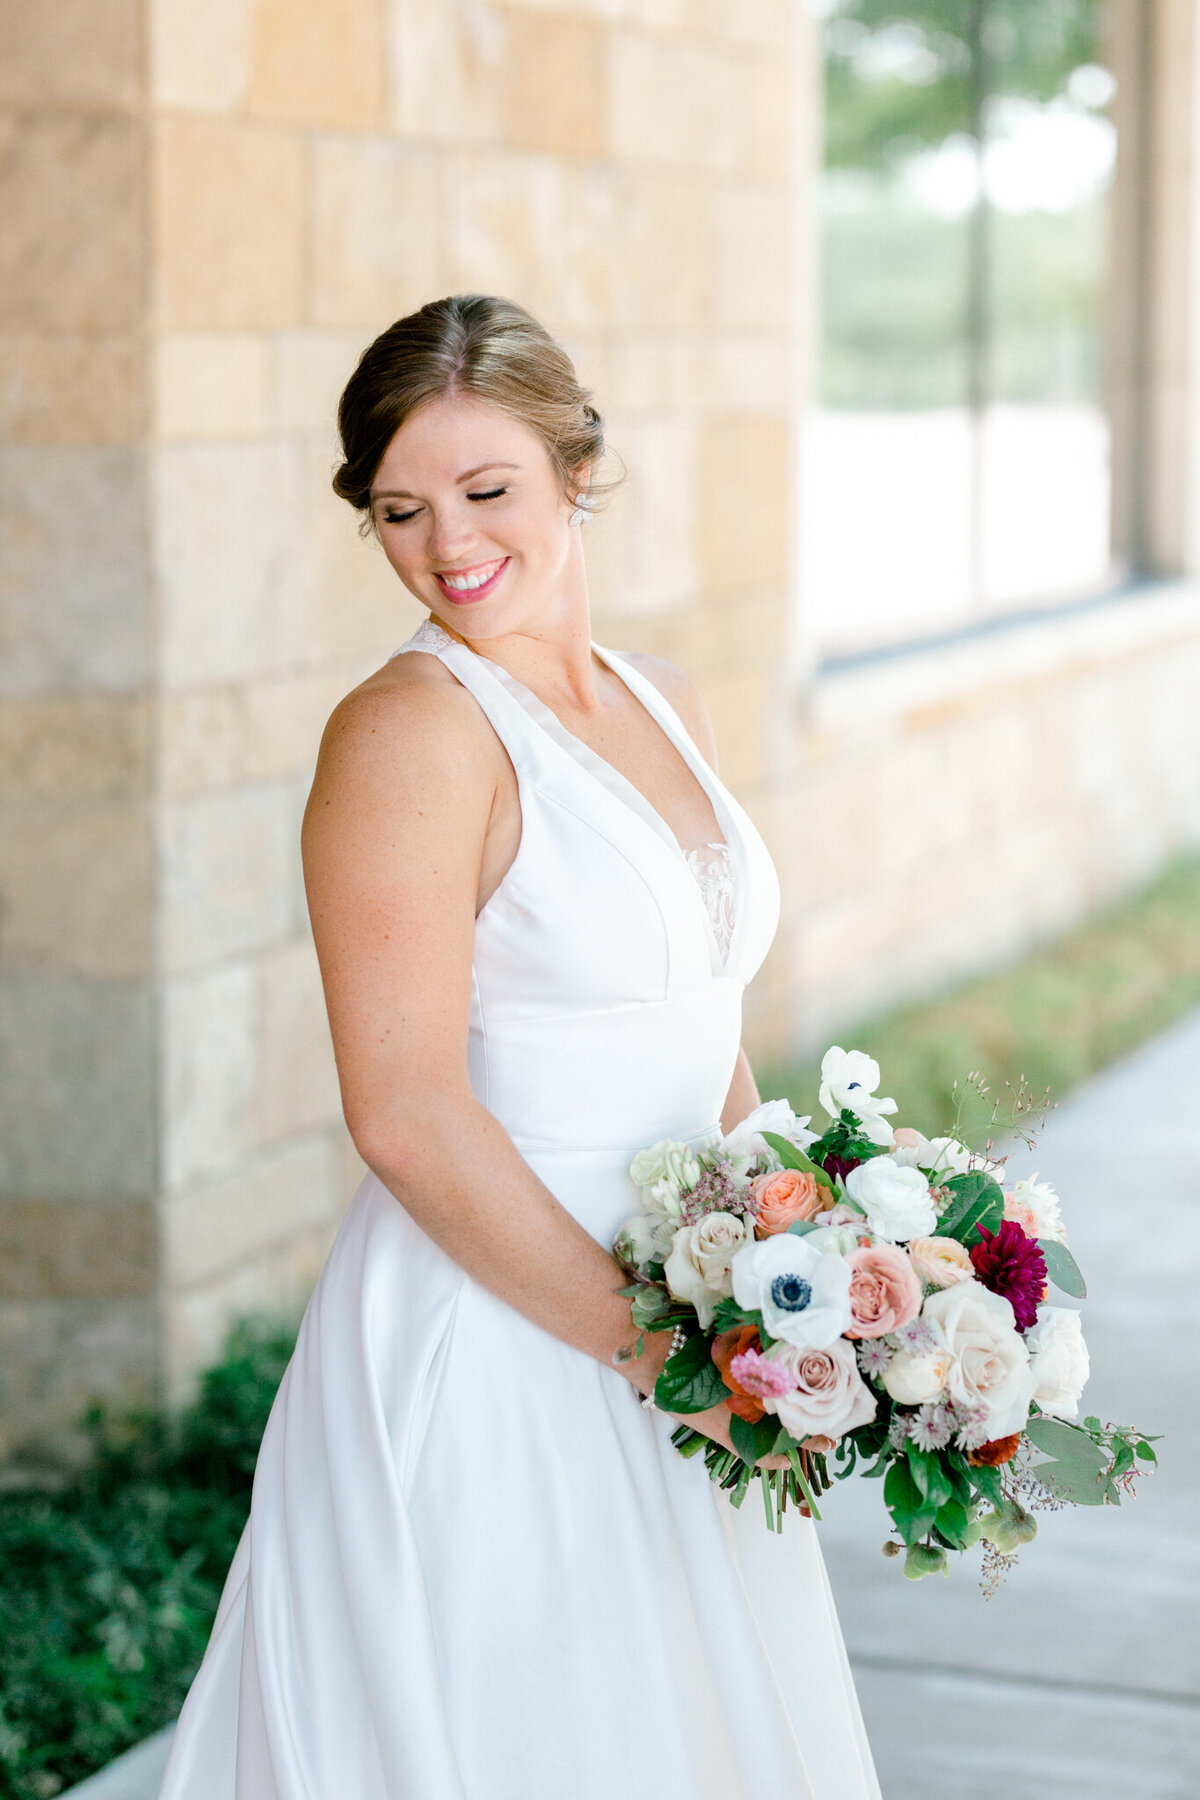 Kaylee & Michael's Wedding at Watermark Community Church | Dallas Wedding Photographer | Sami Kathryn Photography-64